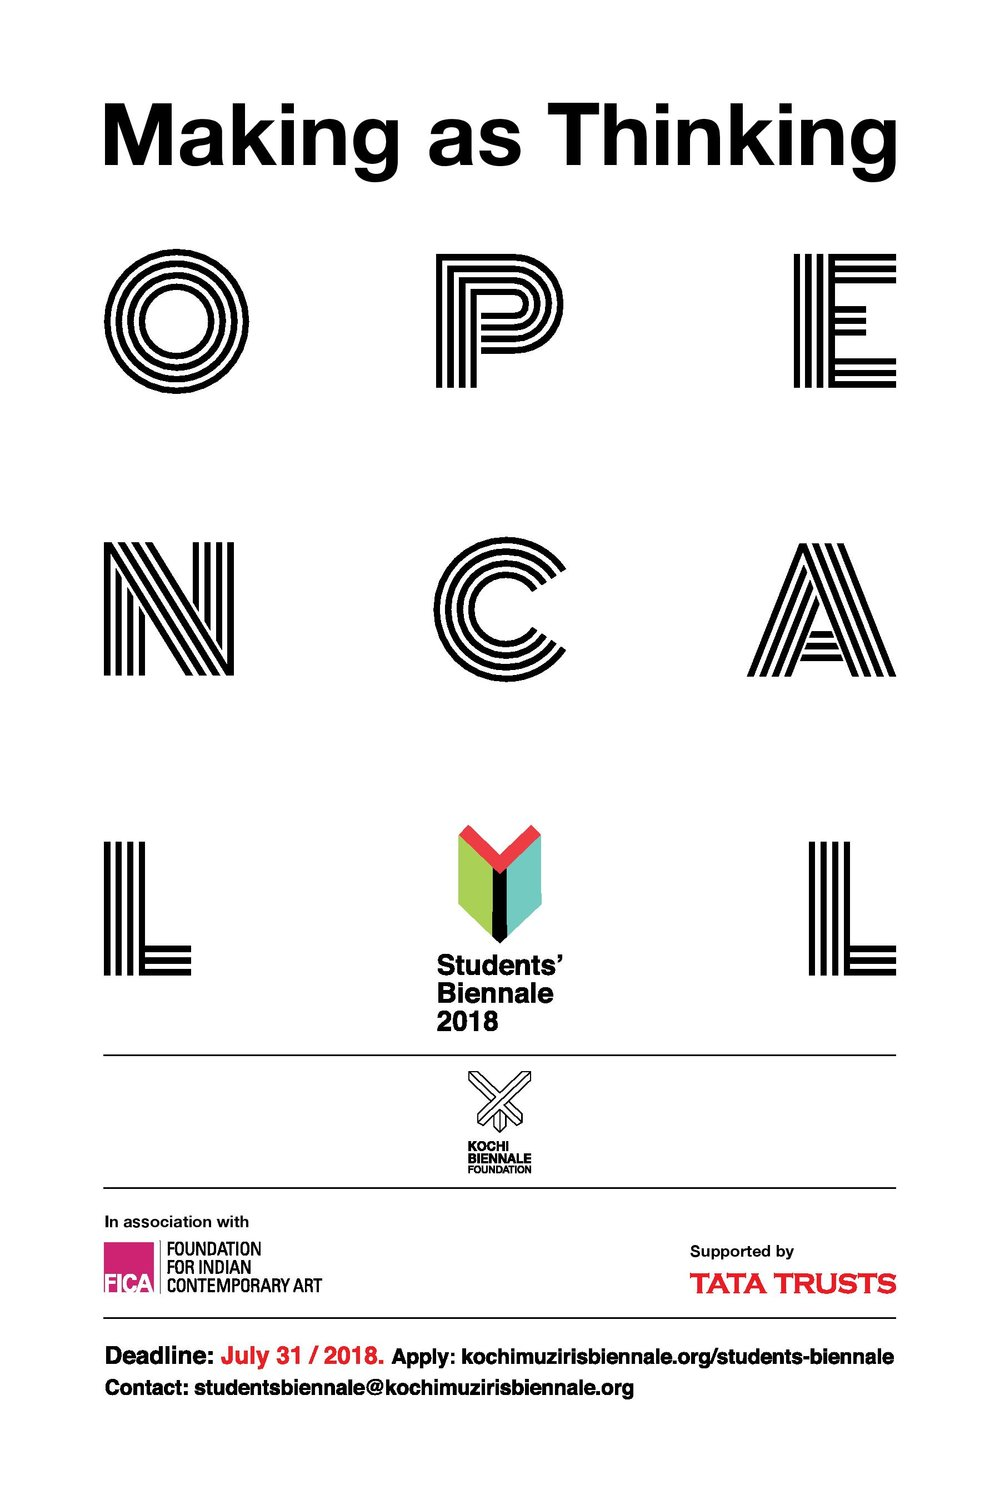 OPEN CALL FOR APPLICATIONSStudents' Biennale 2018 / Making as Thinking - DEADLINE EXTENDED TO 15 AUGUST, 2018